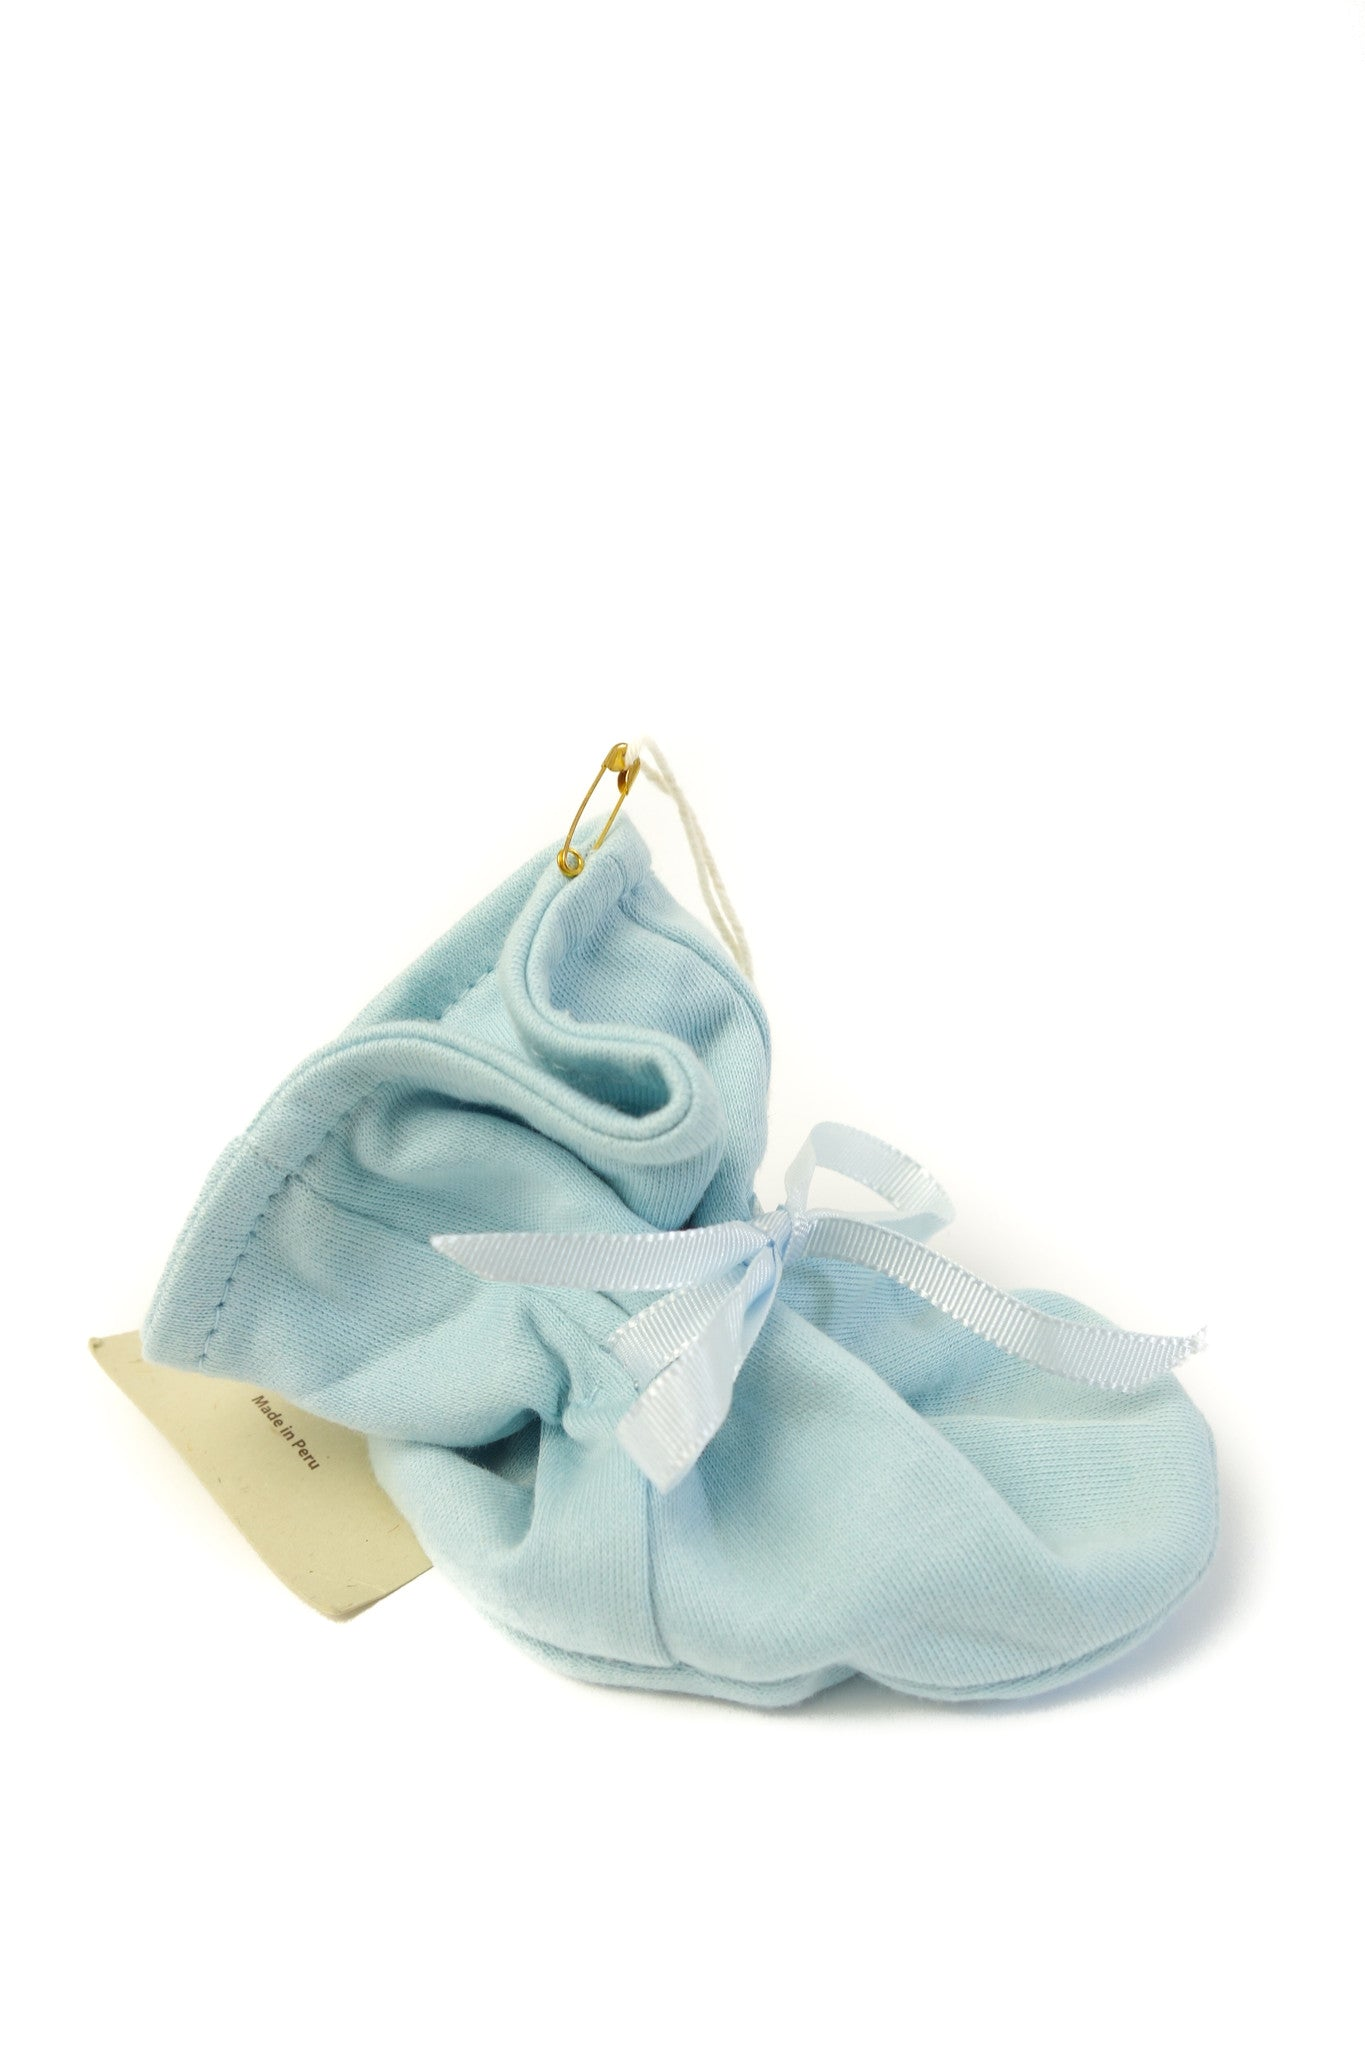 10001704 Organic Family Baby~Booties 3-6M at Retykle